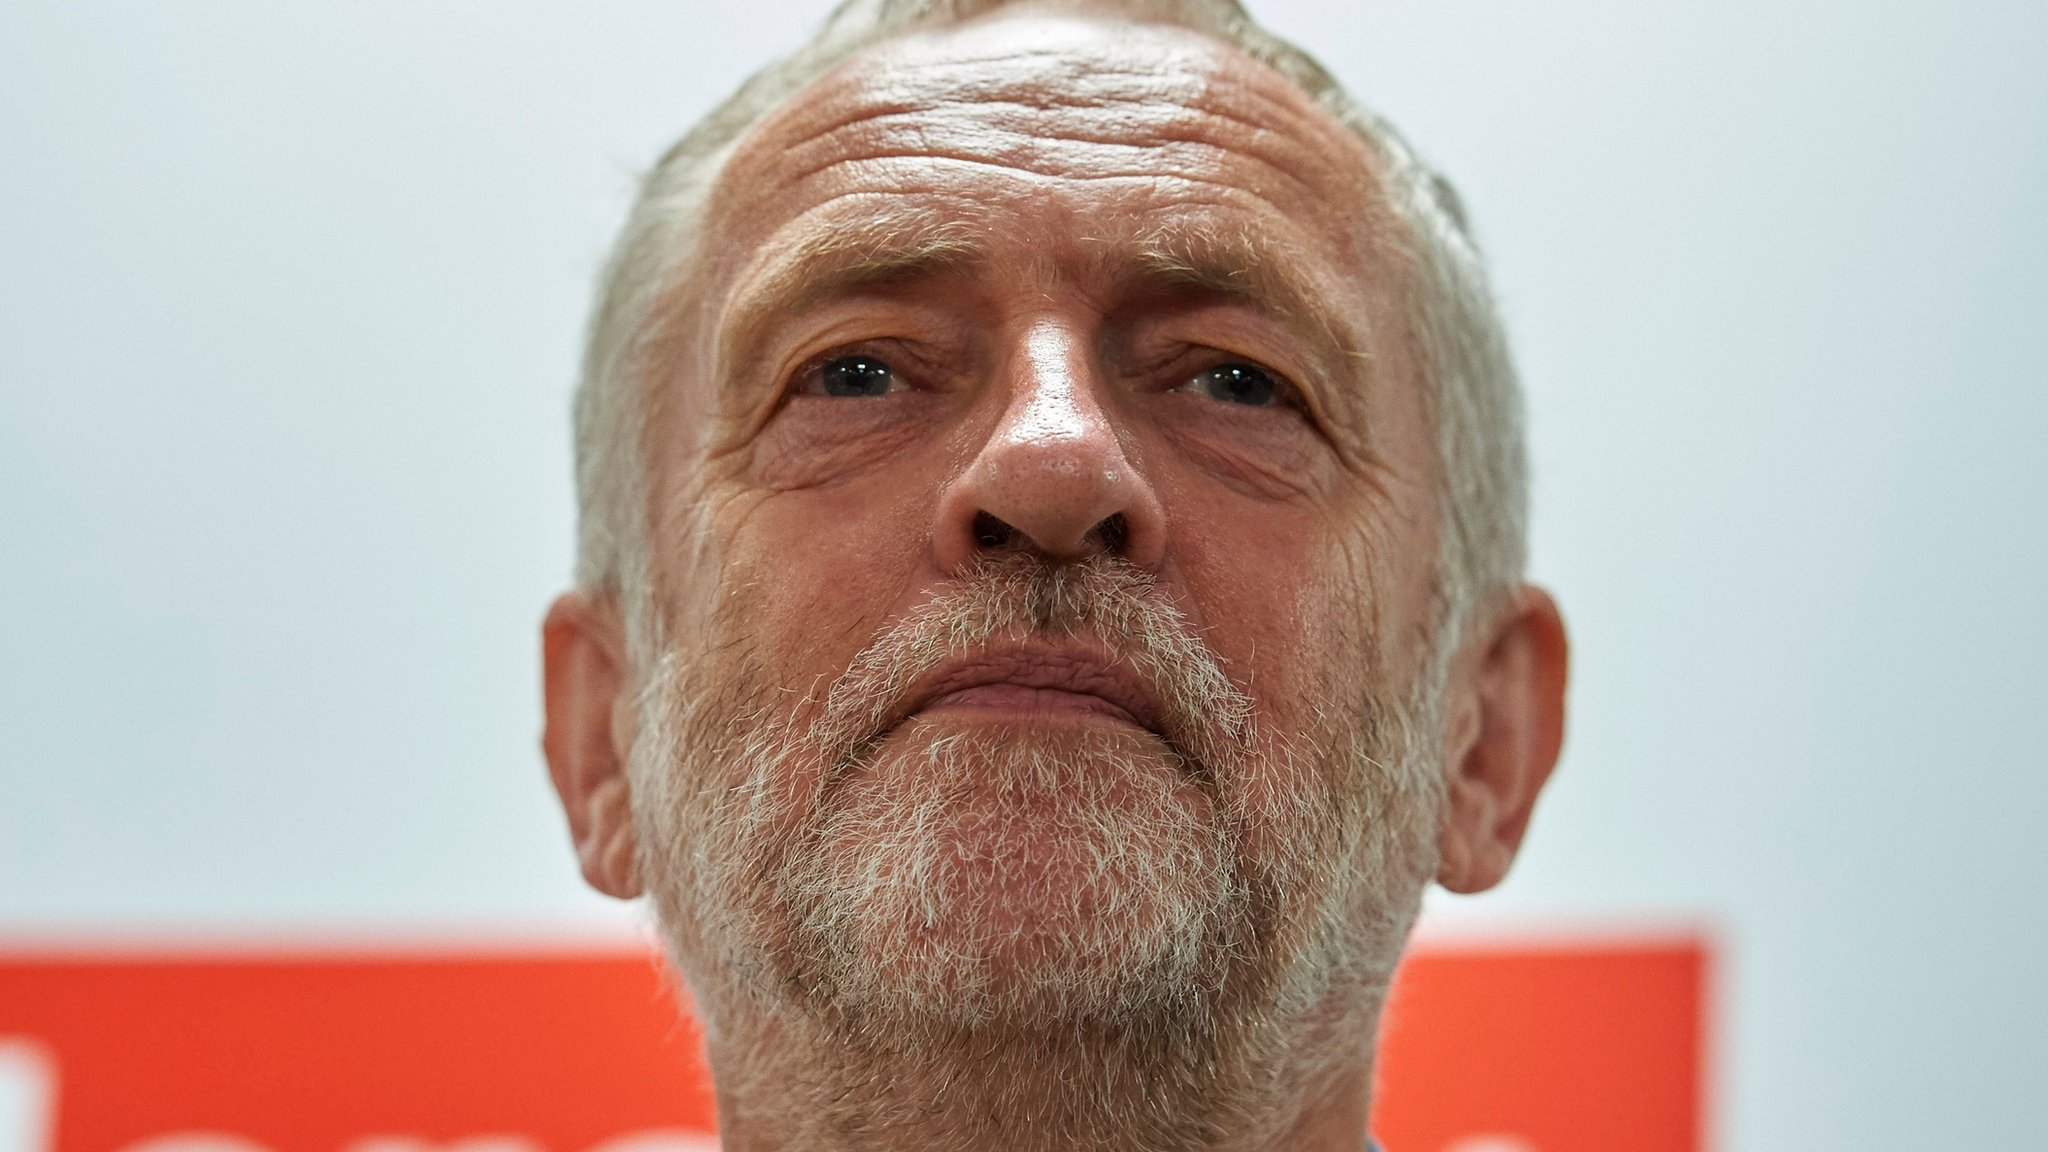 Labour leadership: Corbyn says his 'social movement' will win elections